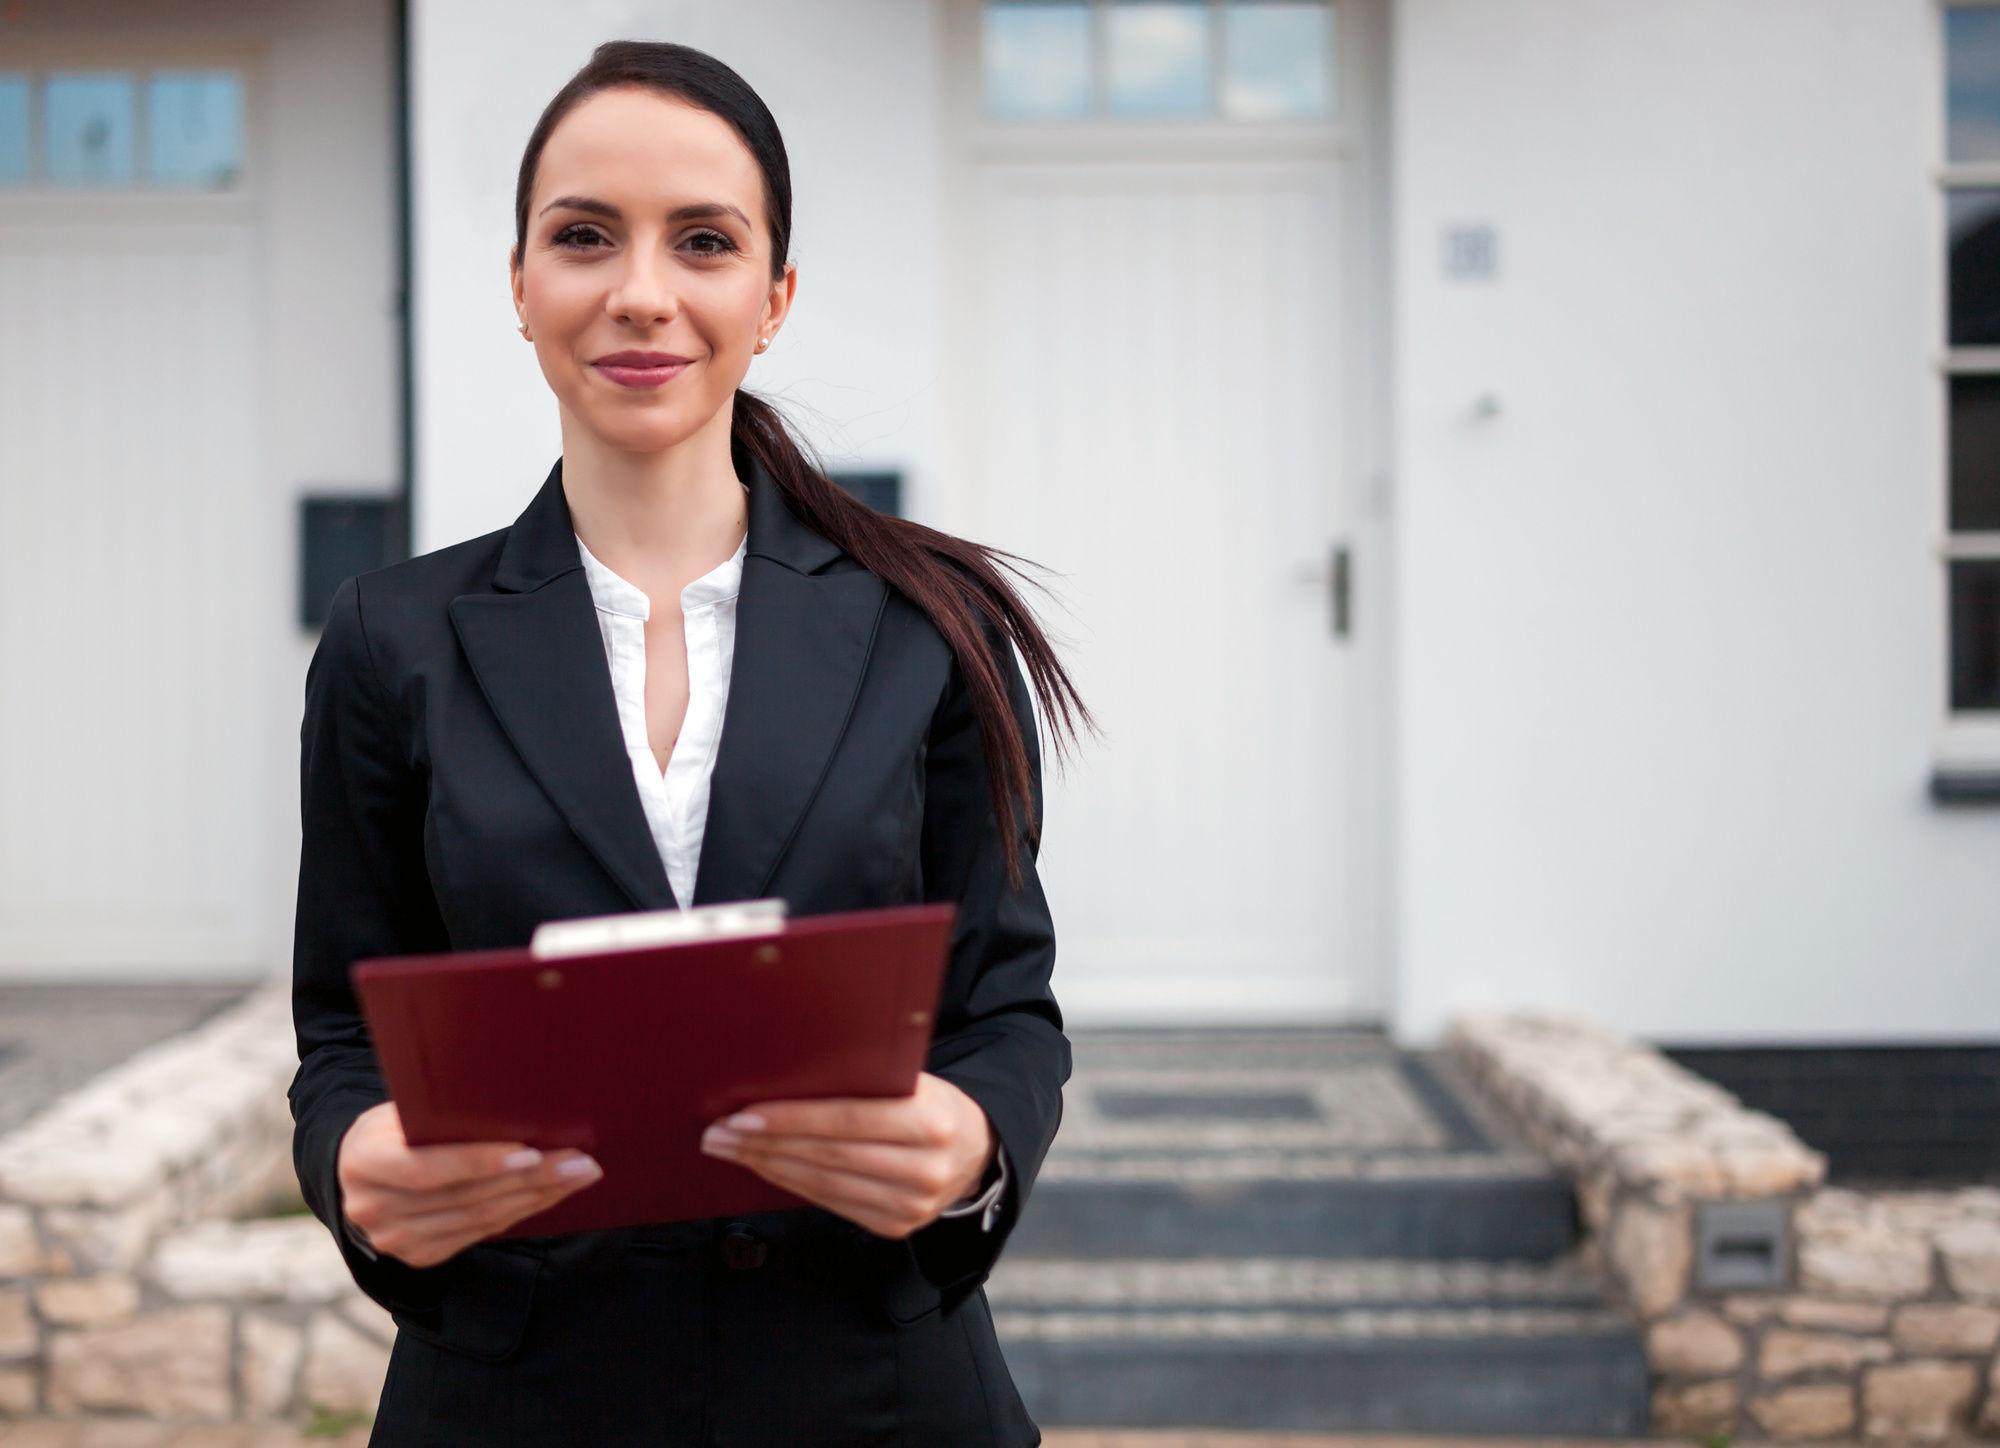 How to hire a qualified real estate agentin your city?